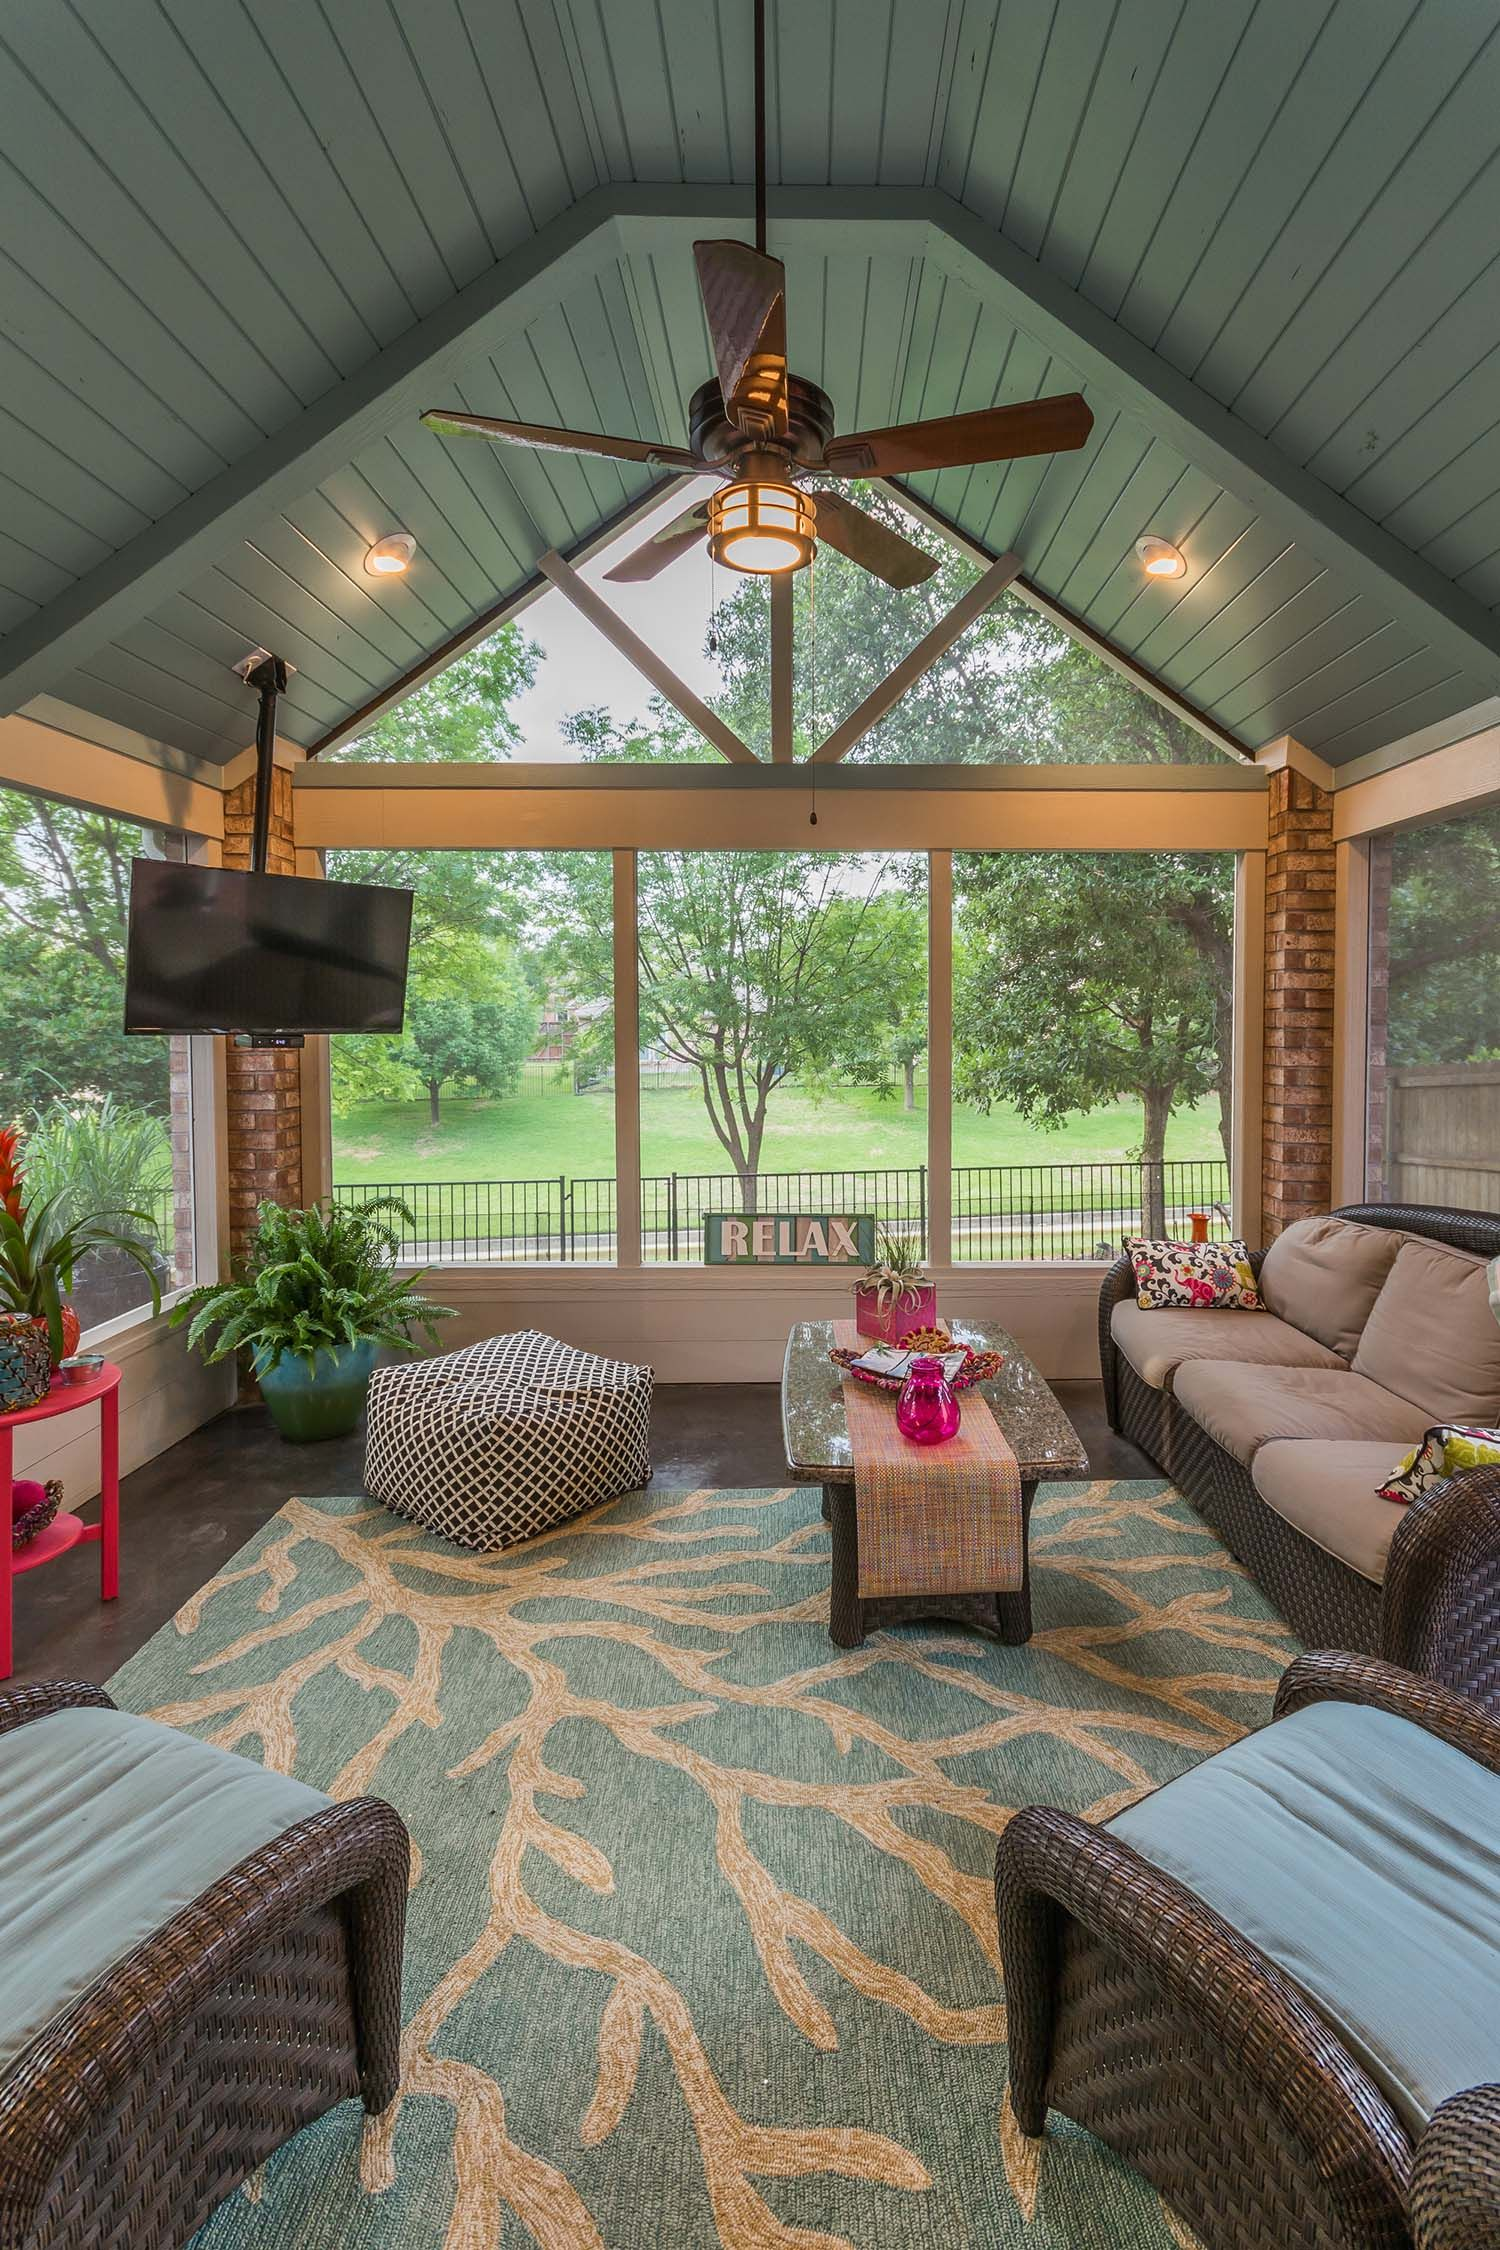 Room Design Free: 38 Amazingly Cozy And Relaxing Screened Porch Design Ideas